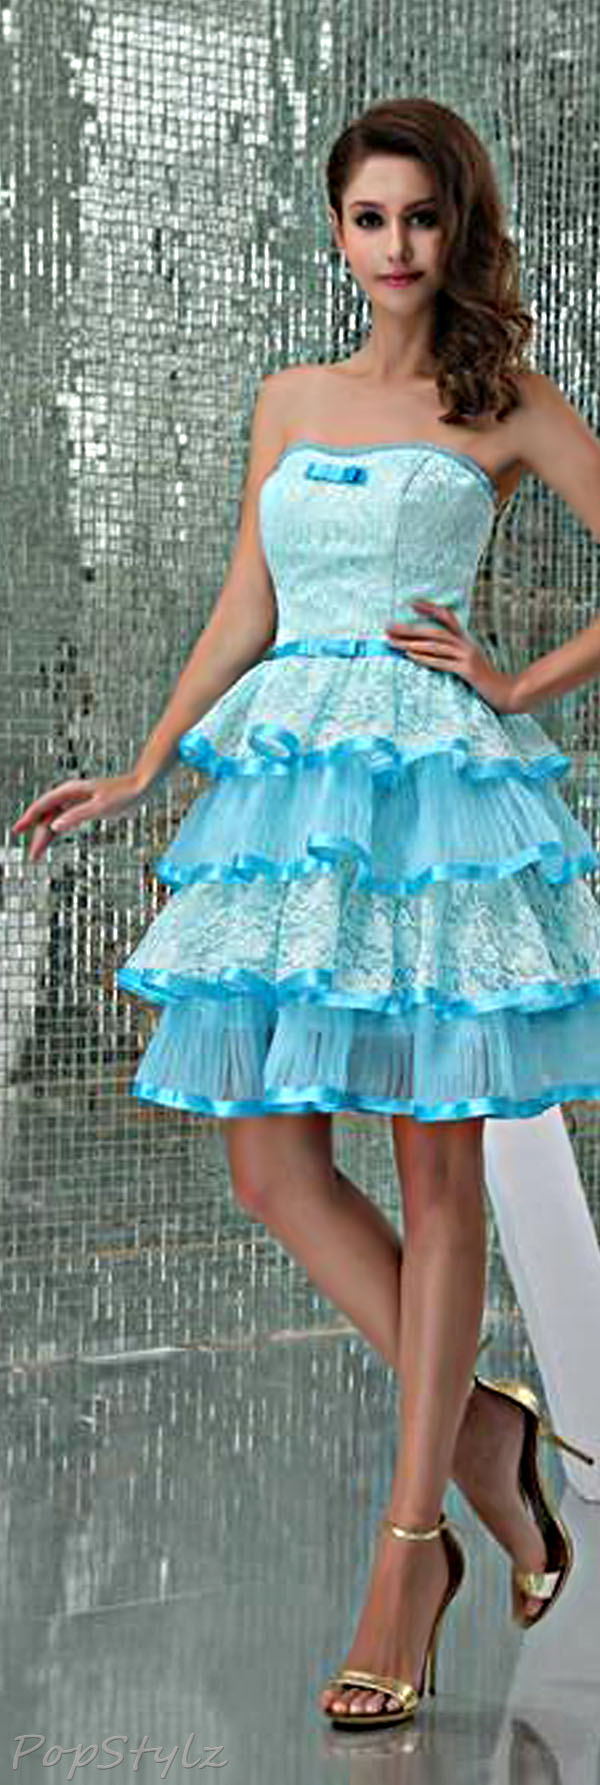 Honeystore Women's Blue Tiered Lace & Organza Sweetheart Party Dress